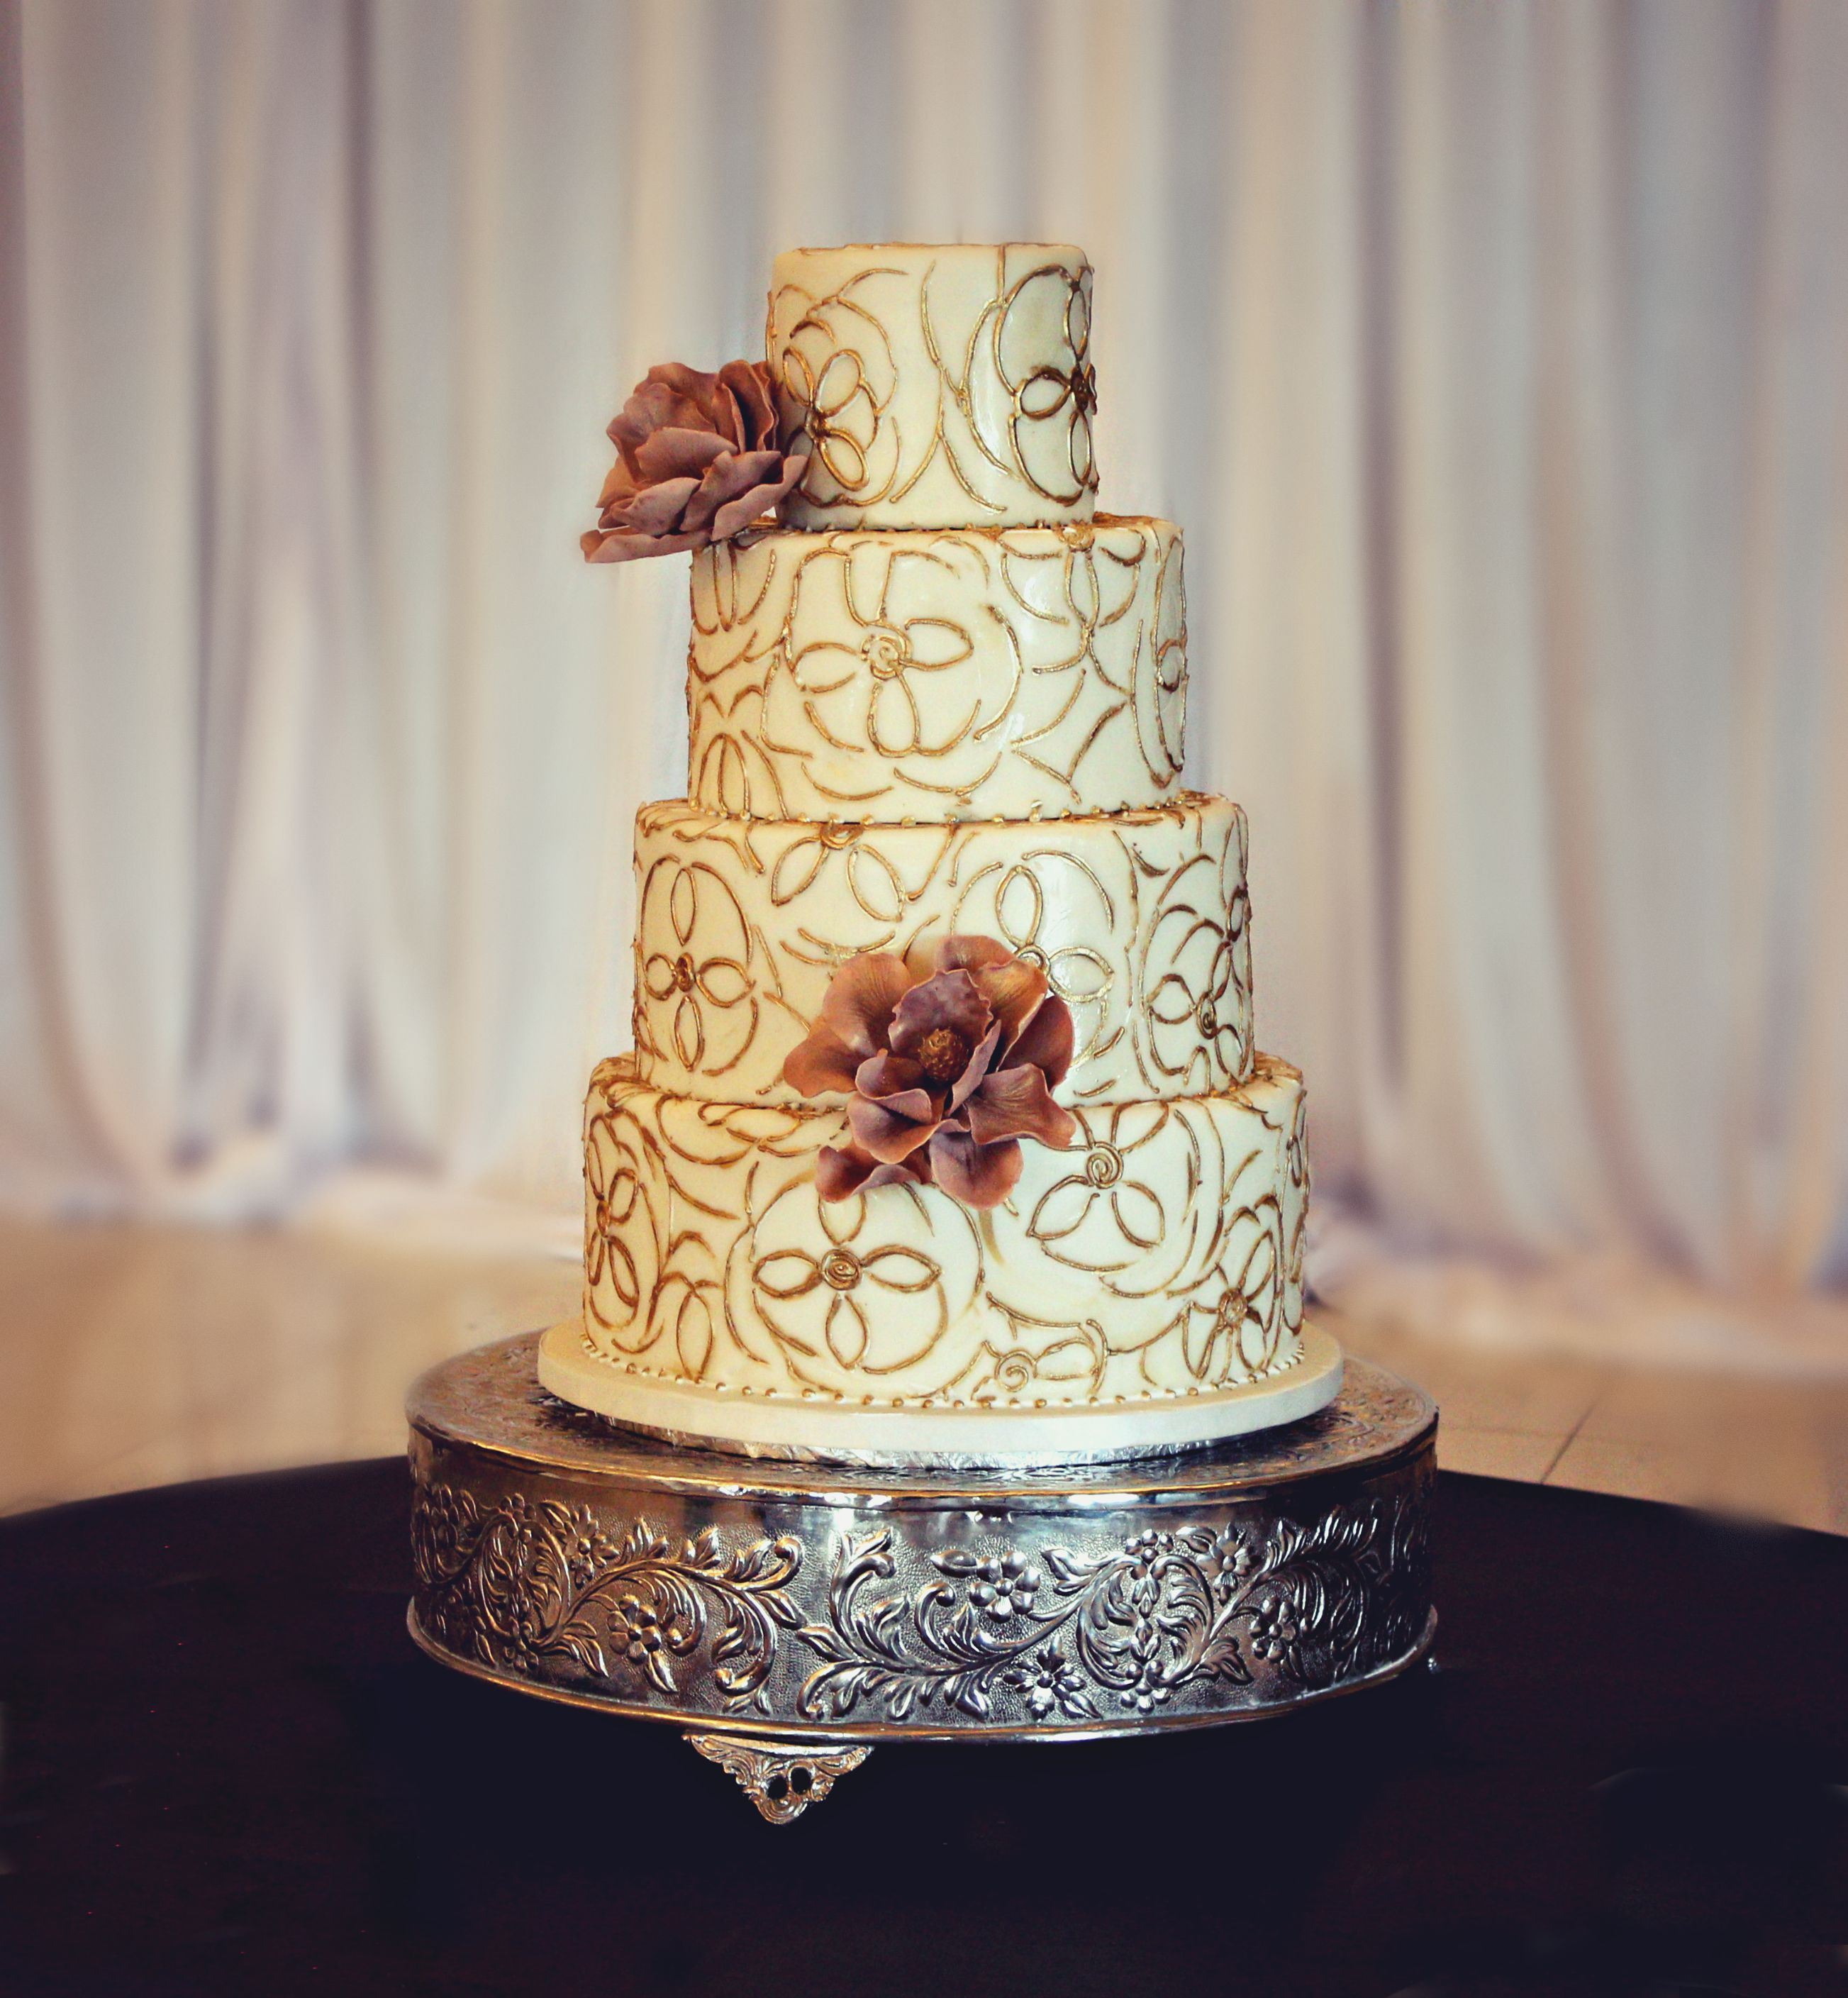 Gold and chocolate brown wedding cake 4 tiers on site edit.jpg